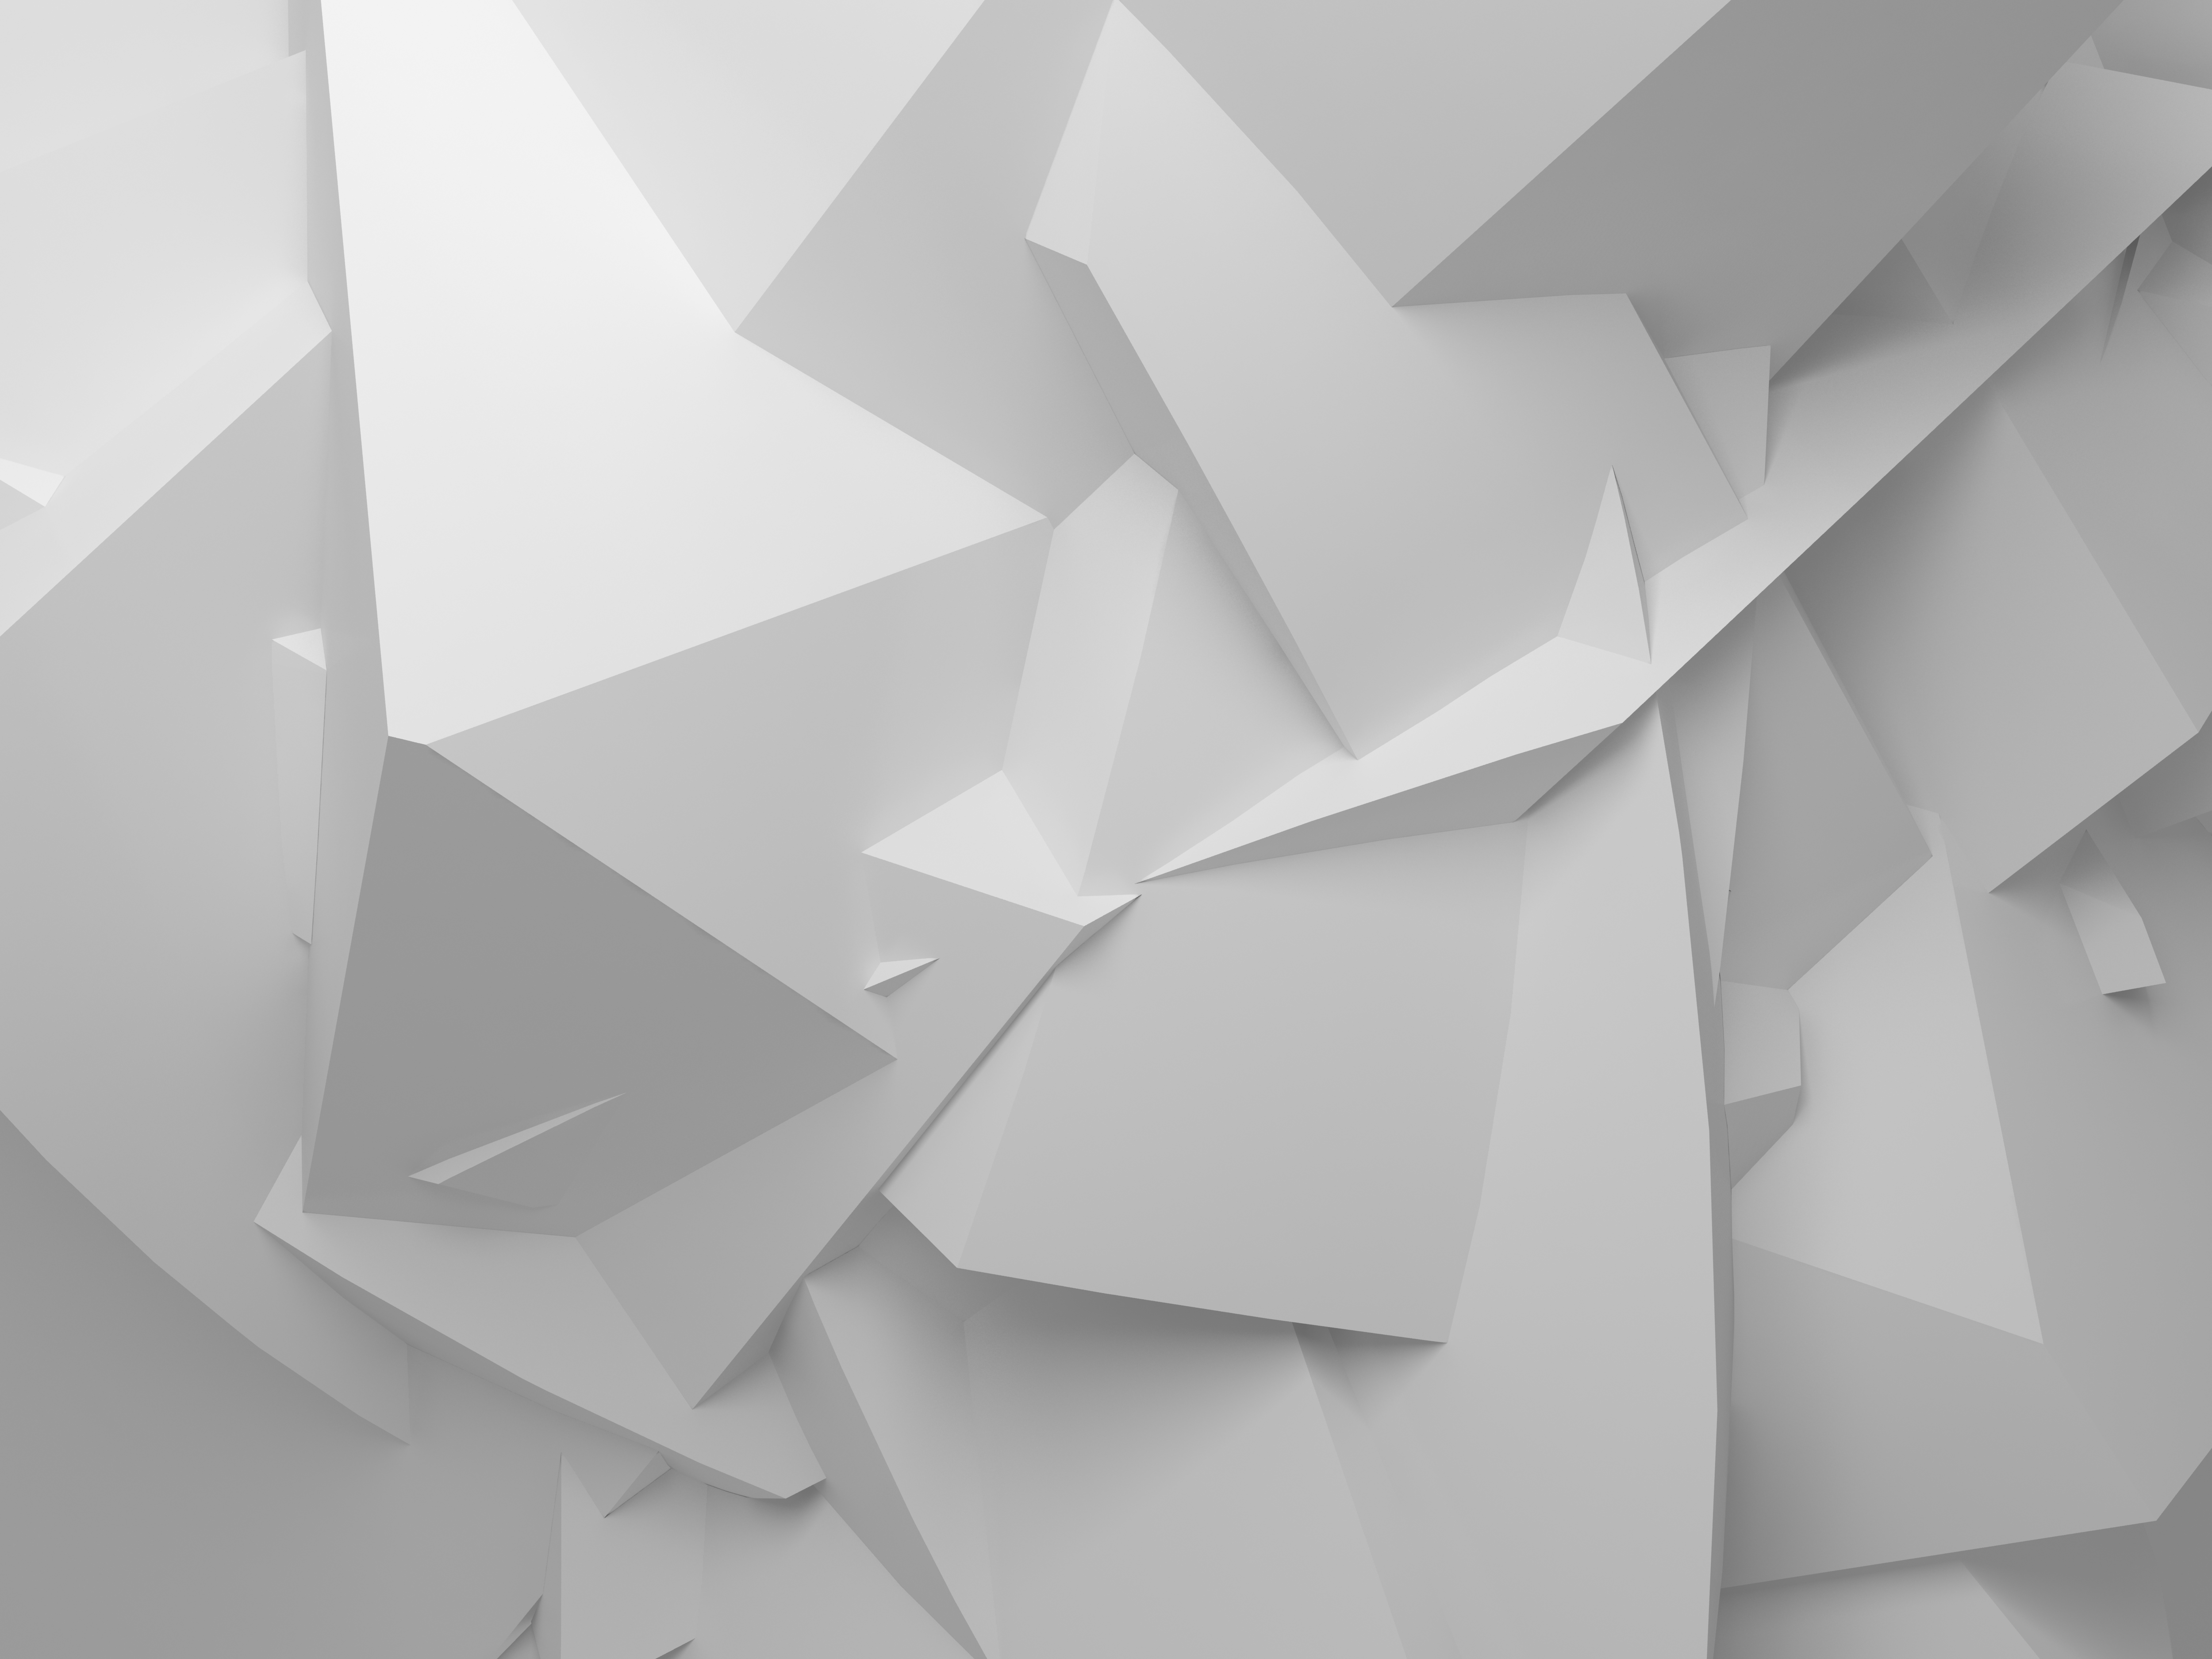 abstract white digital background